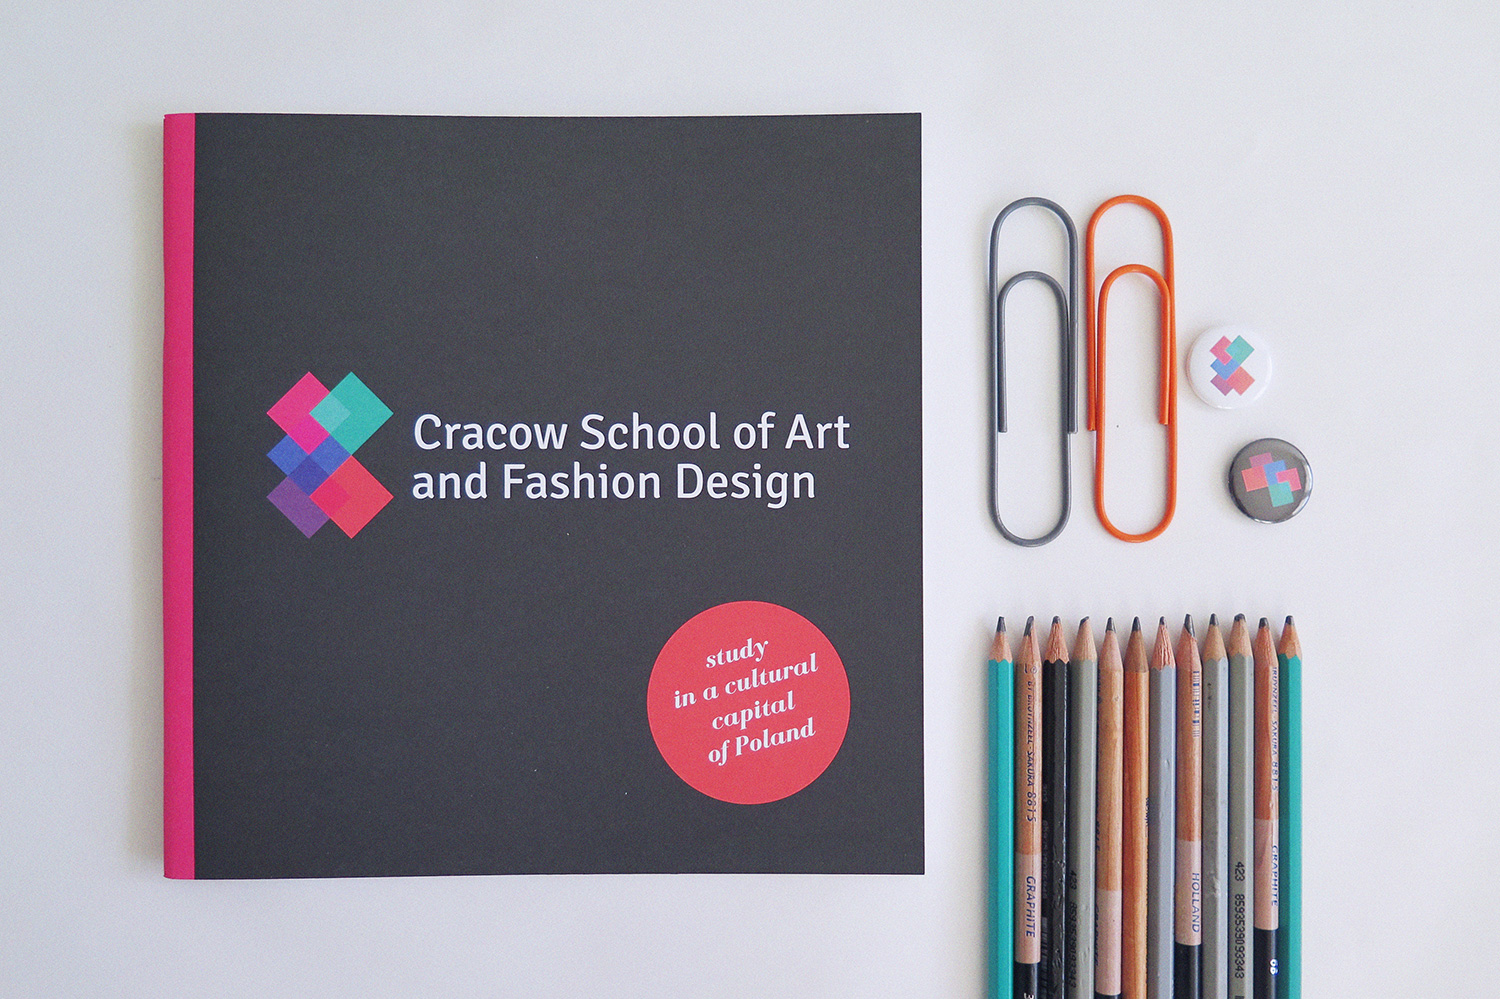 cracow school of art and fashion design brochure by nina gregier (1)